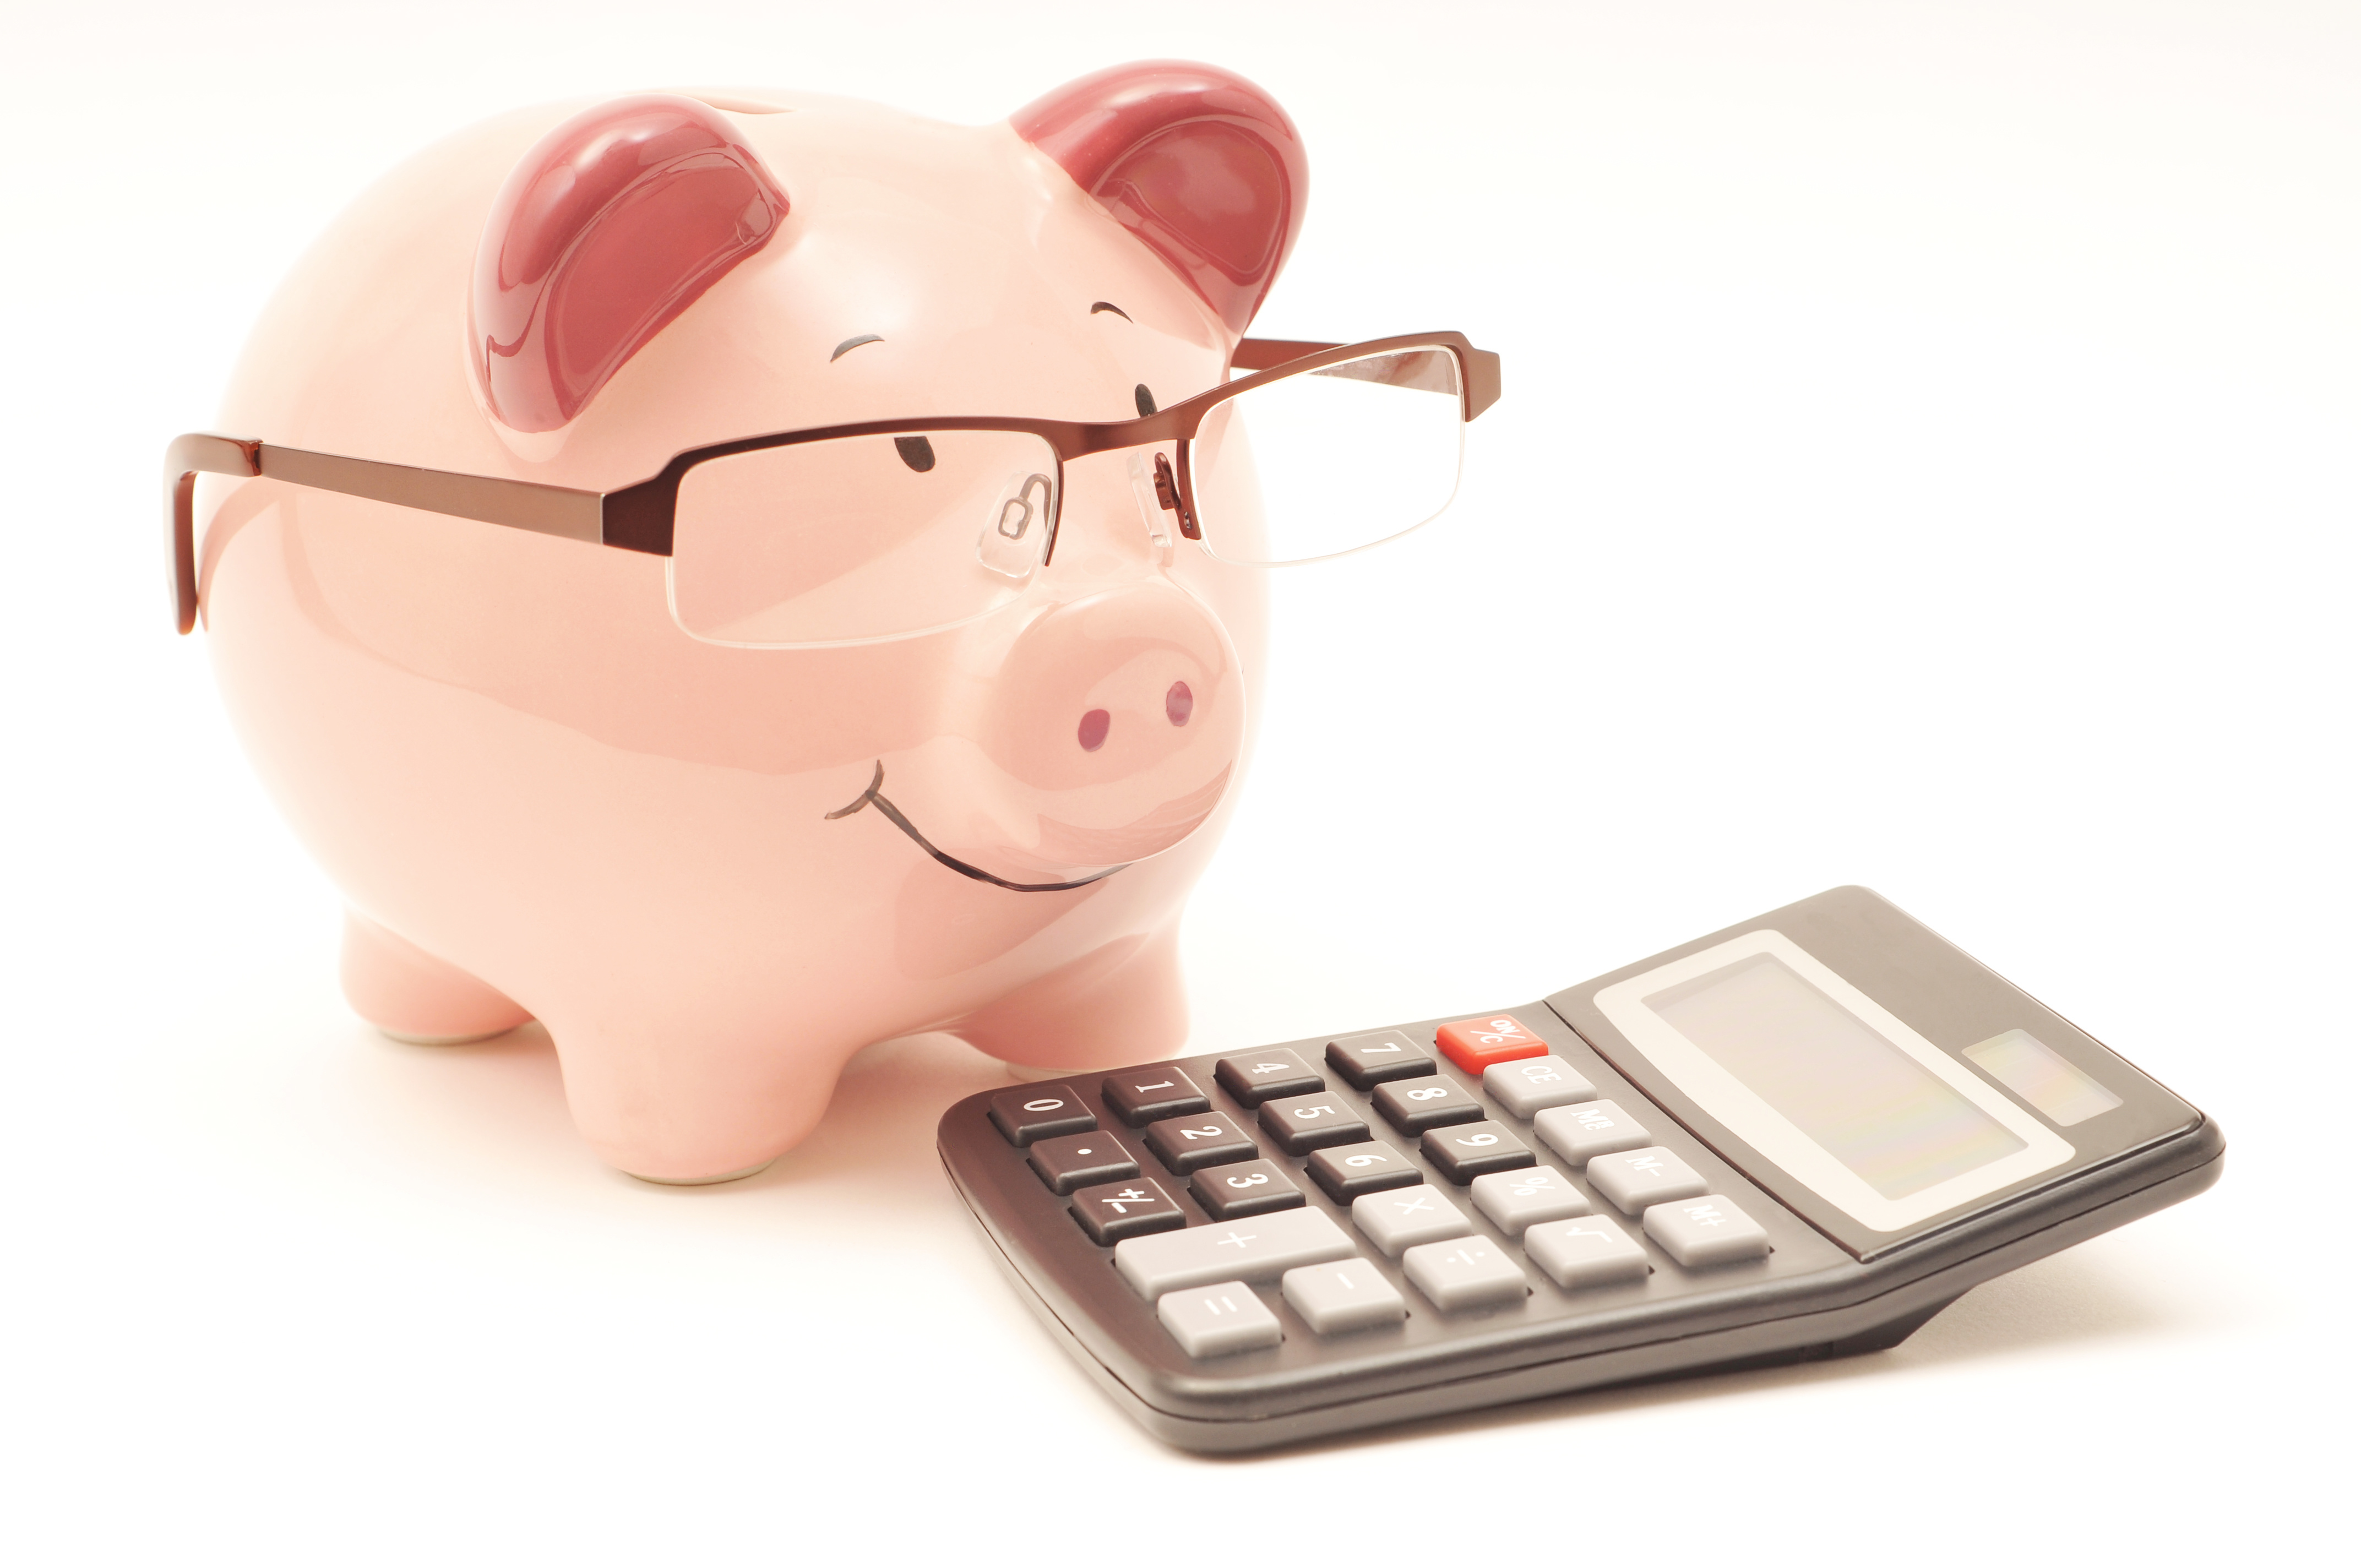 Pink piggy bank with calculator, save money concept